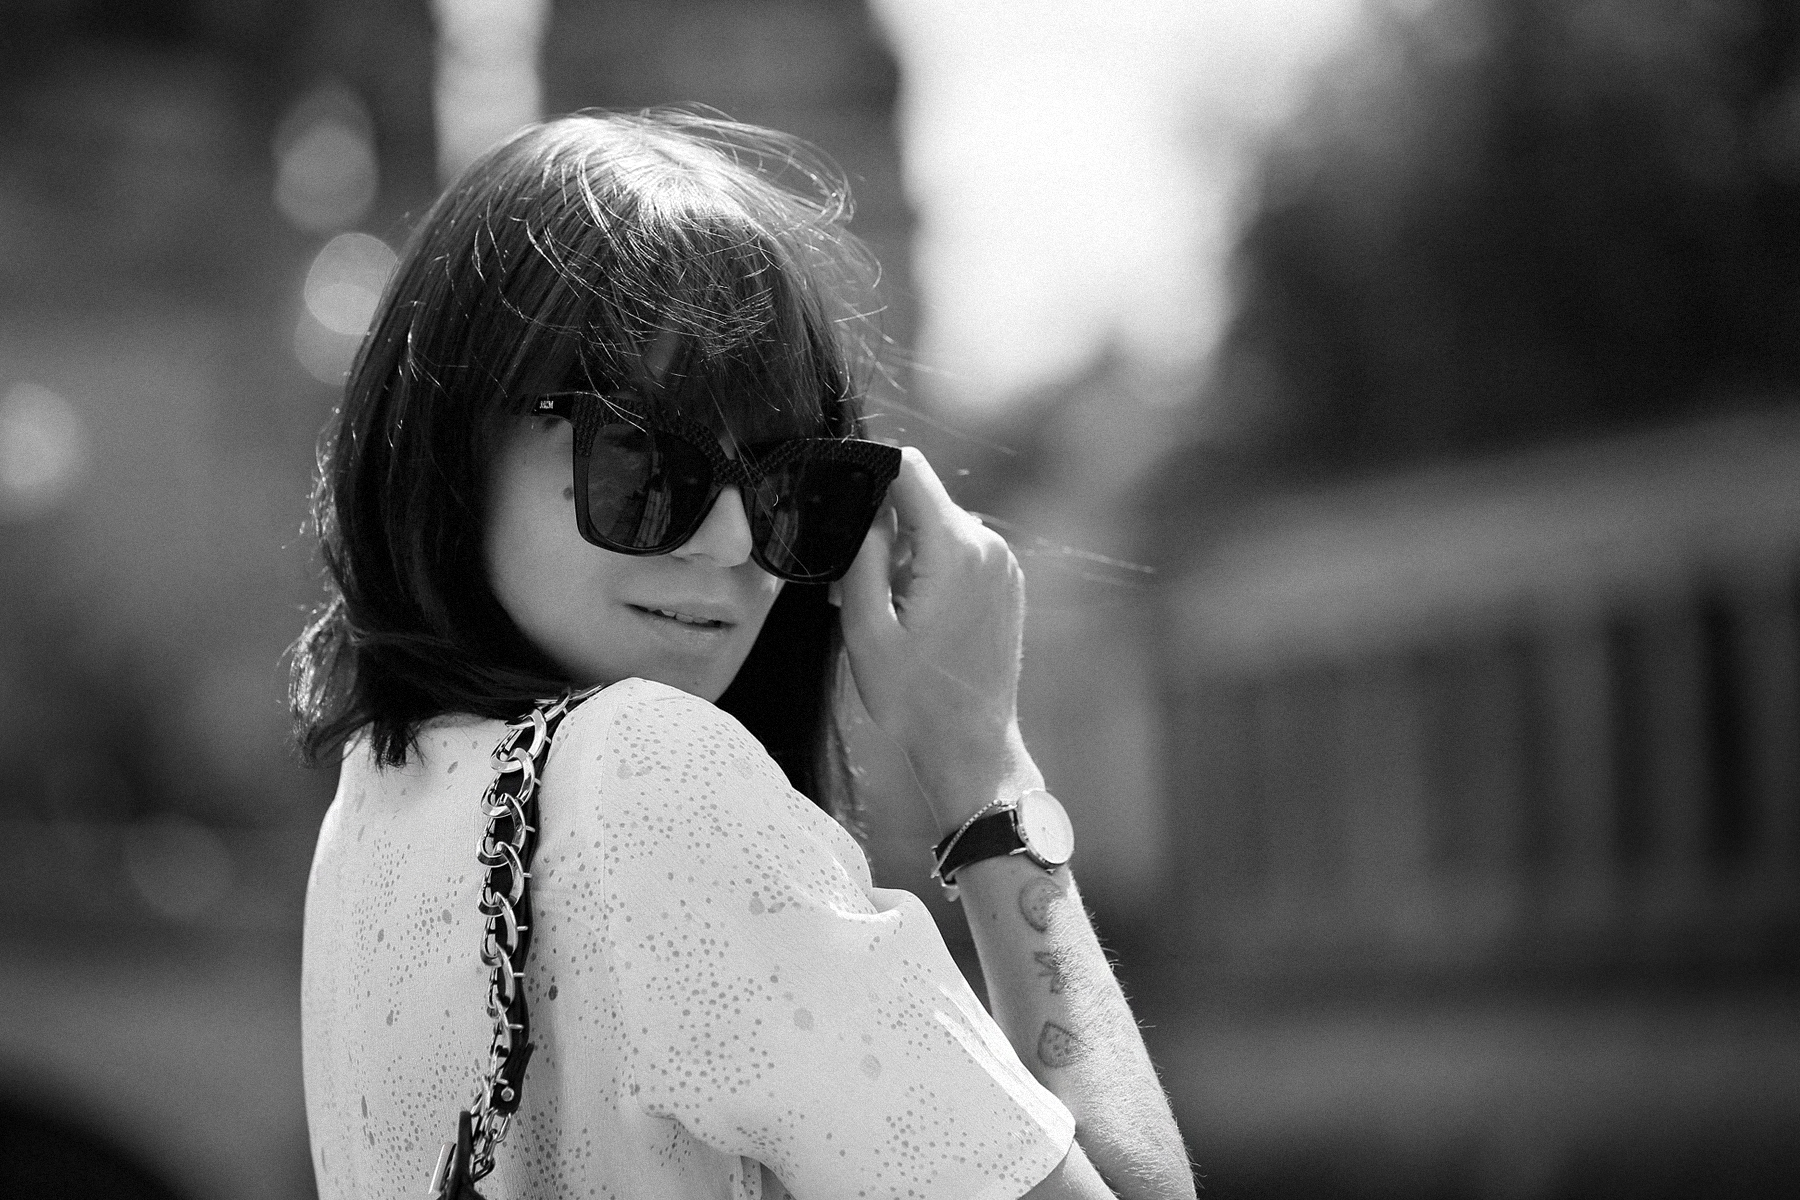 outfit berlin dom museumsinsel denim white blouse parisienne mbym jeanne damas style bangs brunette chic look outfitblogger breuninger loewe joyce bag mcm sunglasses summer german fashion blogger cats & dogs modeblog ricarda schernus max bechmann foto 6